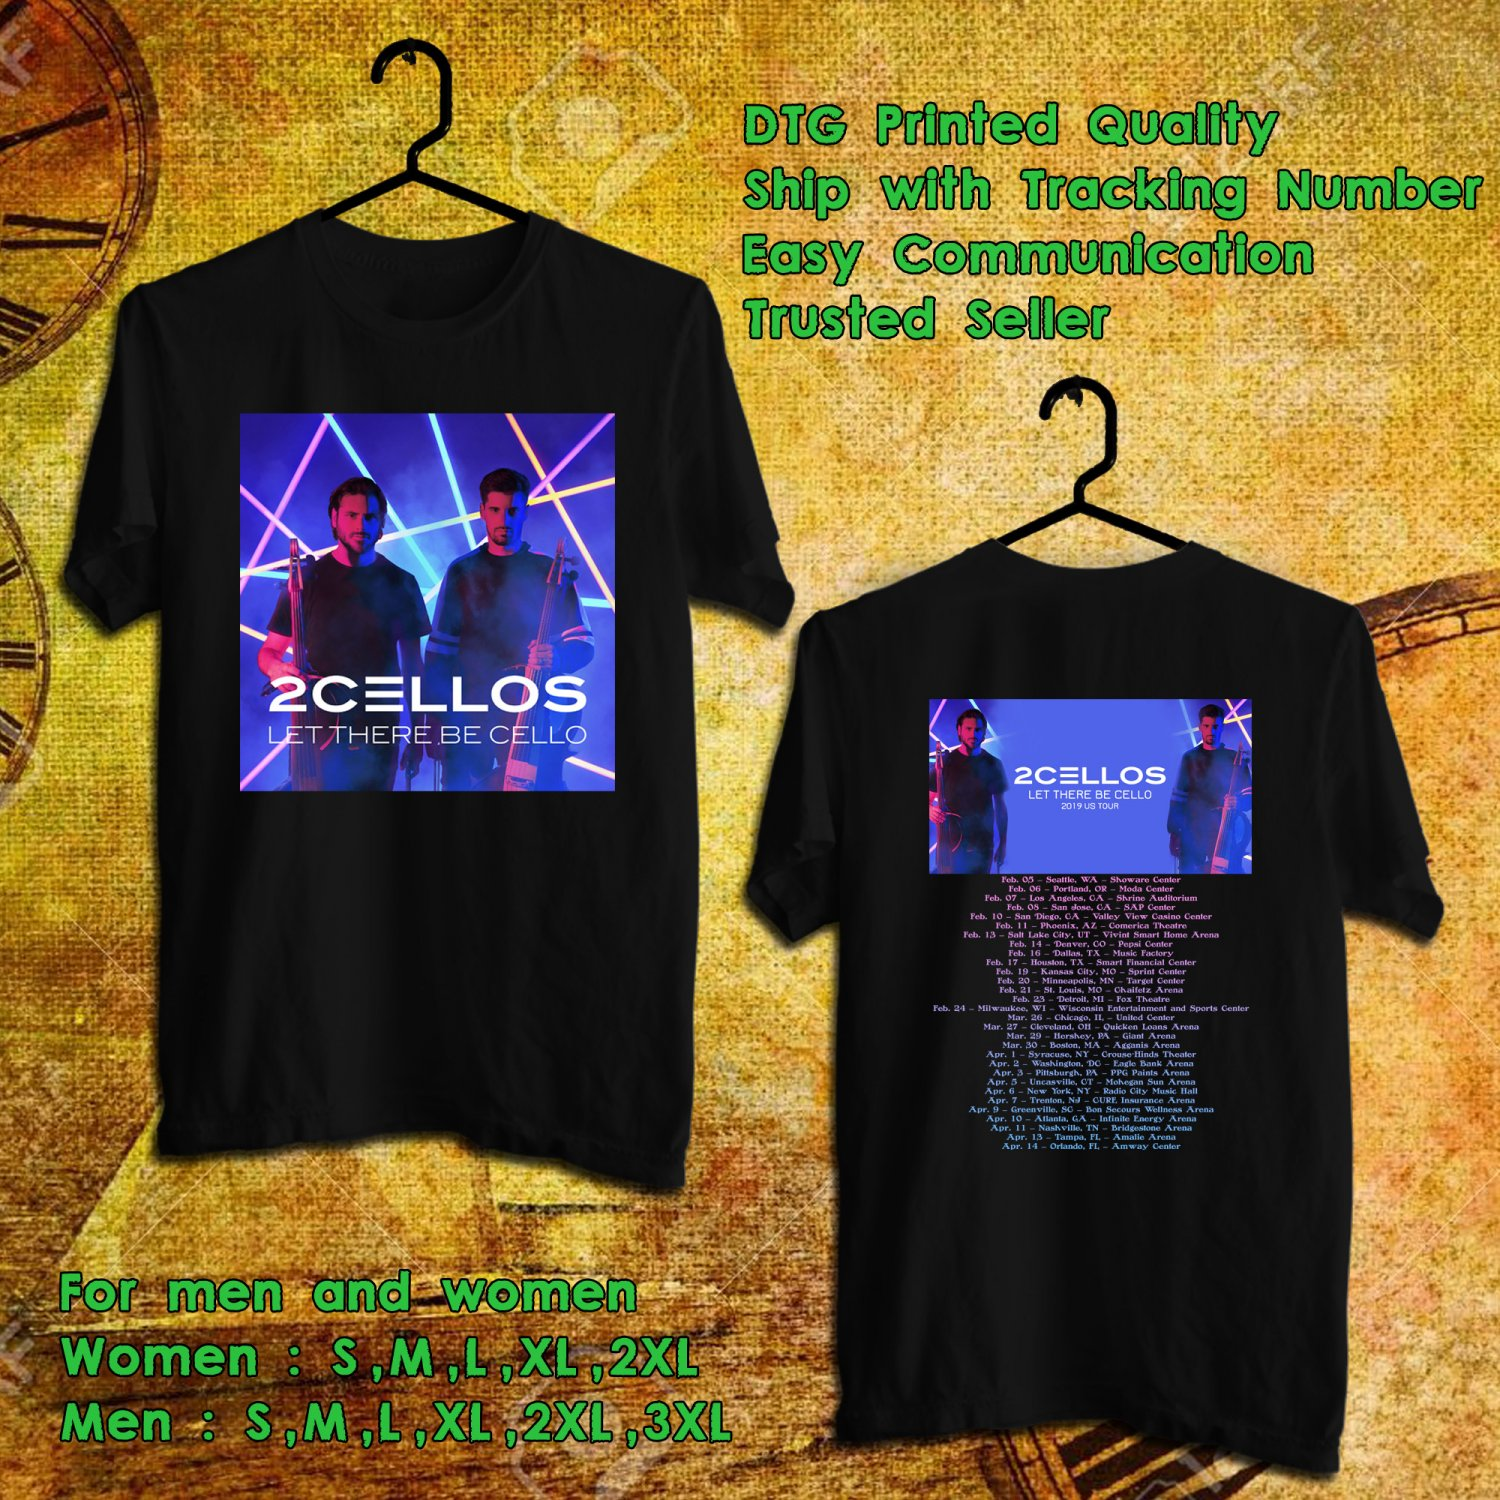 5c736df81969b HITS 2CELLOS LET THERE BE CELLO TOUR 2019 BLACK TEE S 2SIDE MAN ...